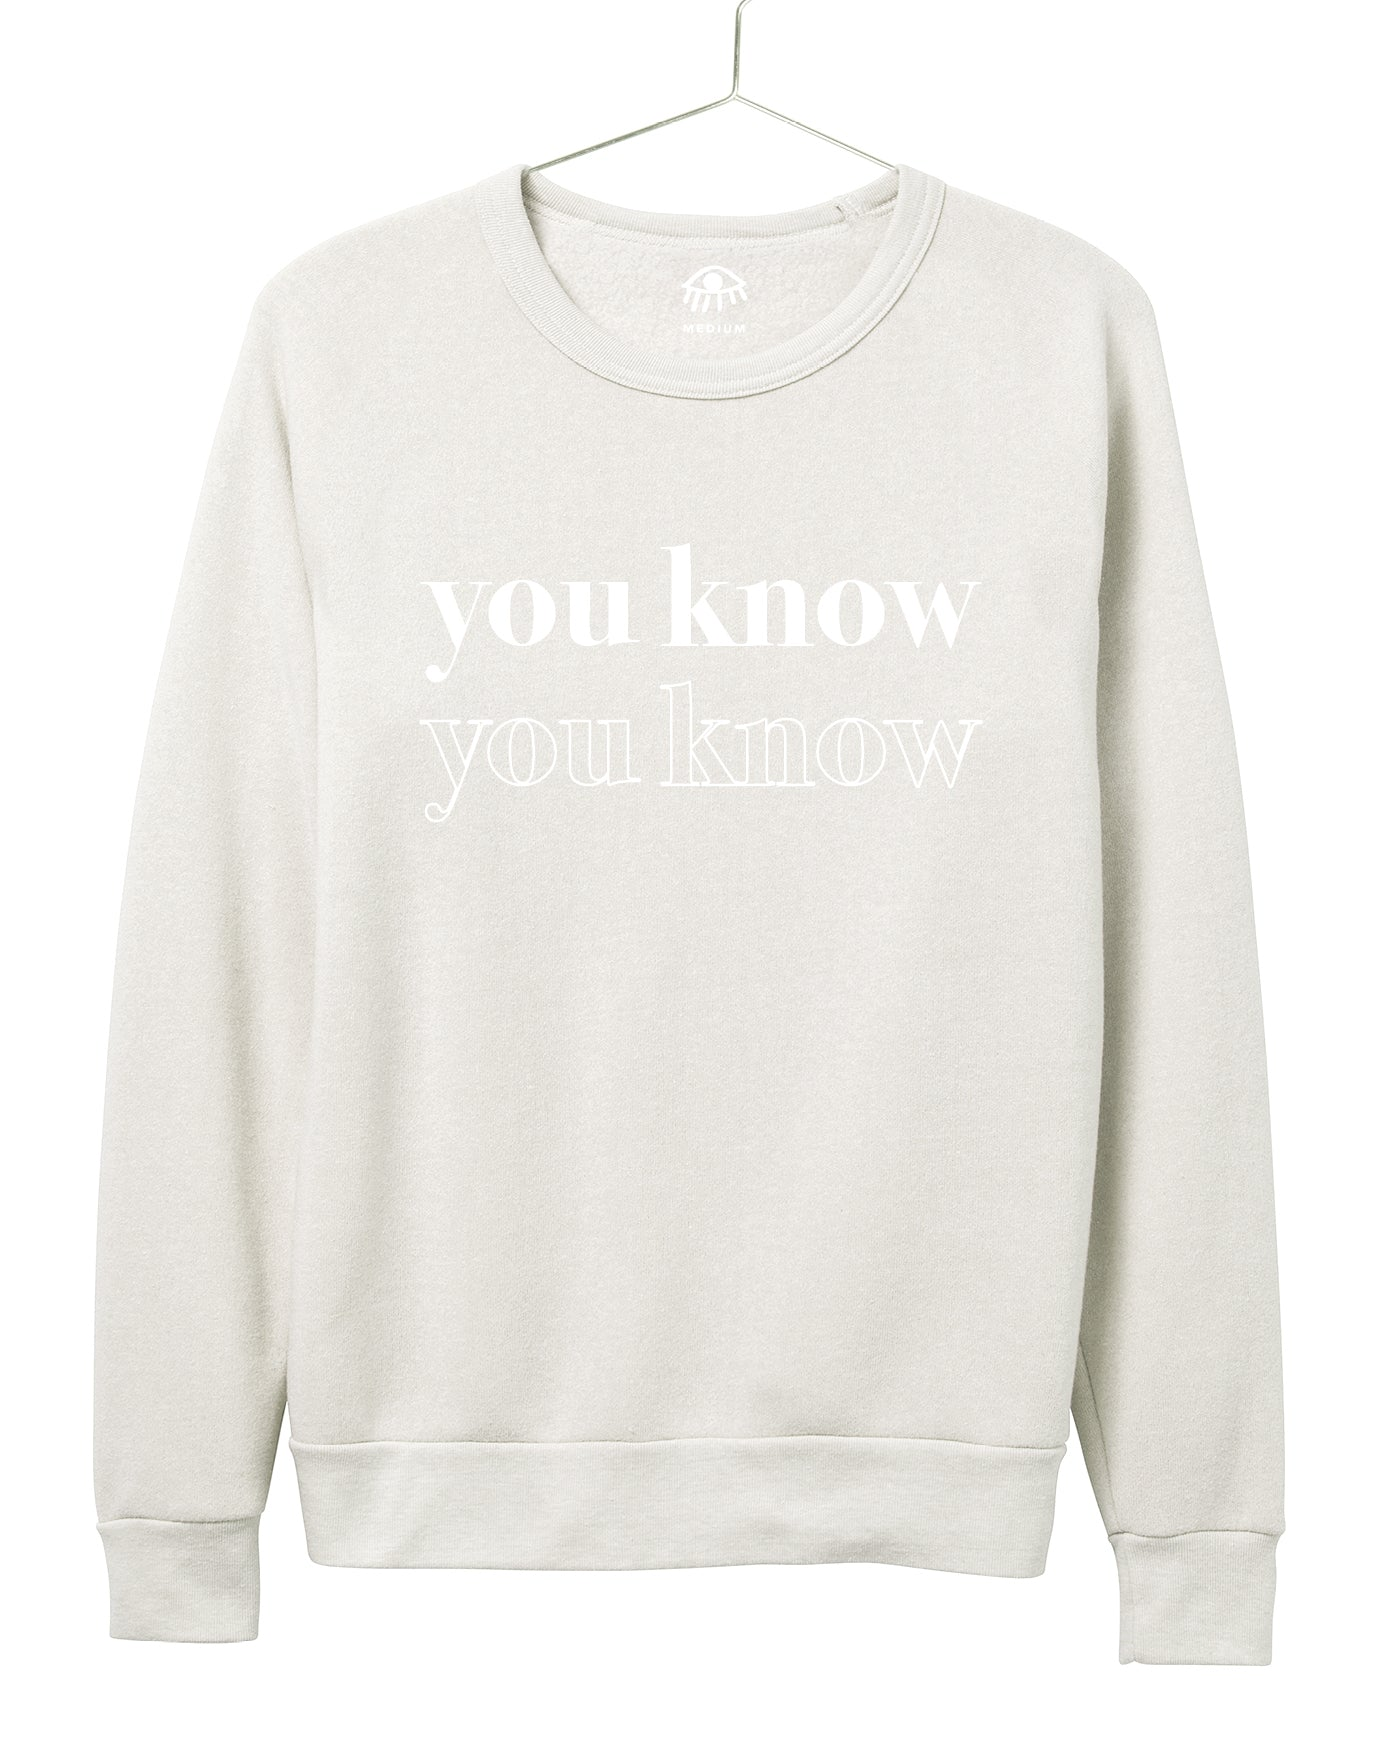 You know You know Women's Crewneck